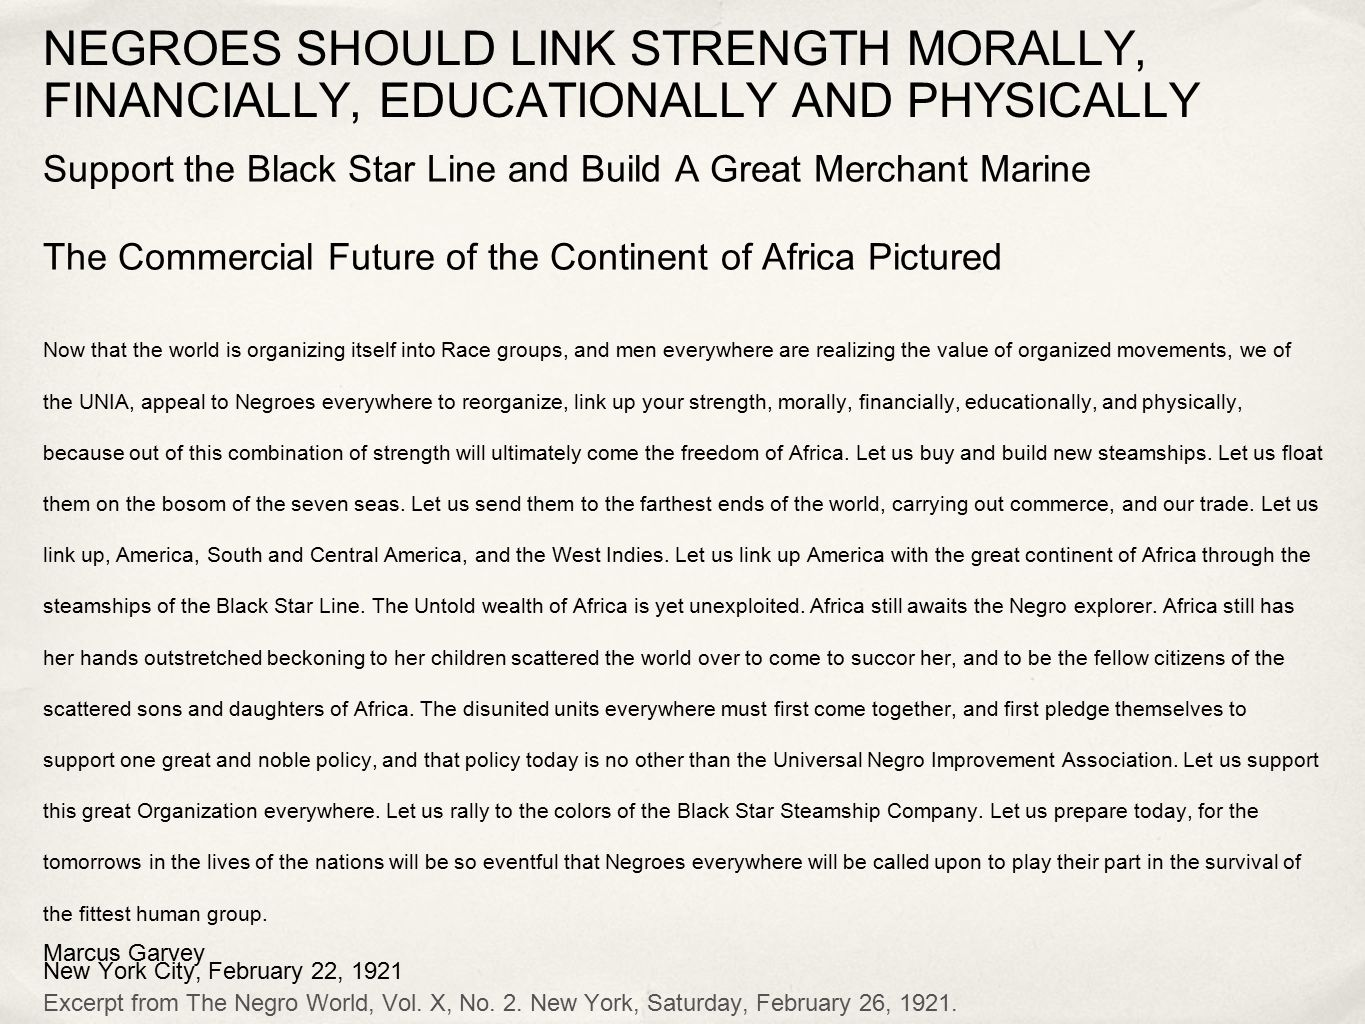 NEGROES SHOULD LINK STRENGTH MORALLY, FINANCIALLY, EDUCATIONALLY AND PHYSICALLY